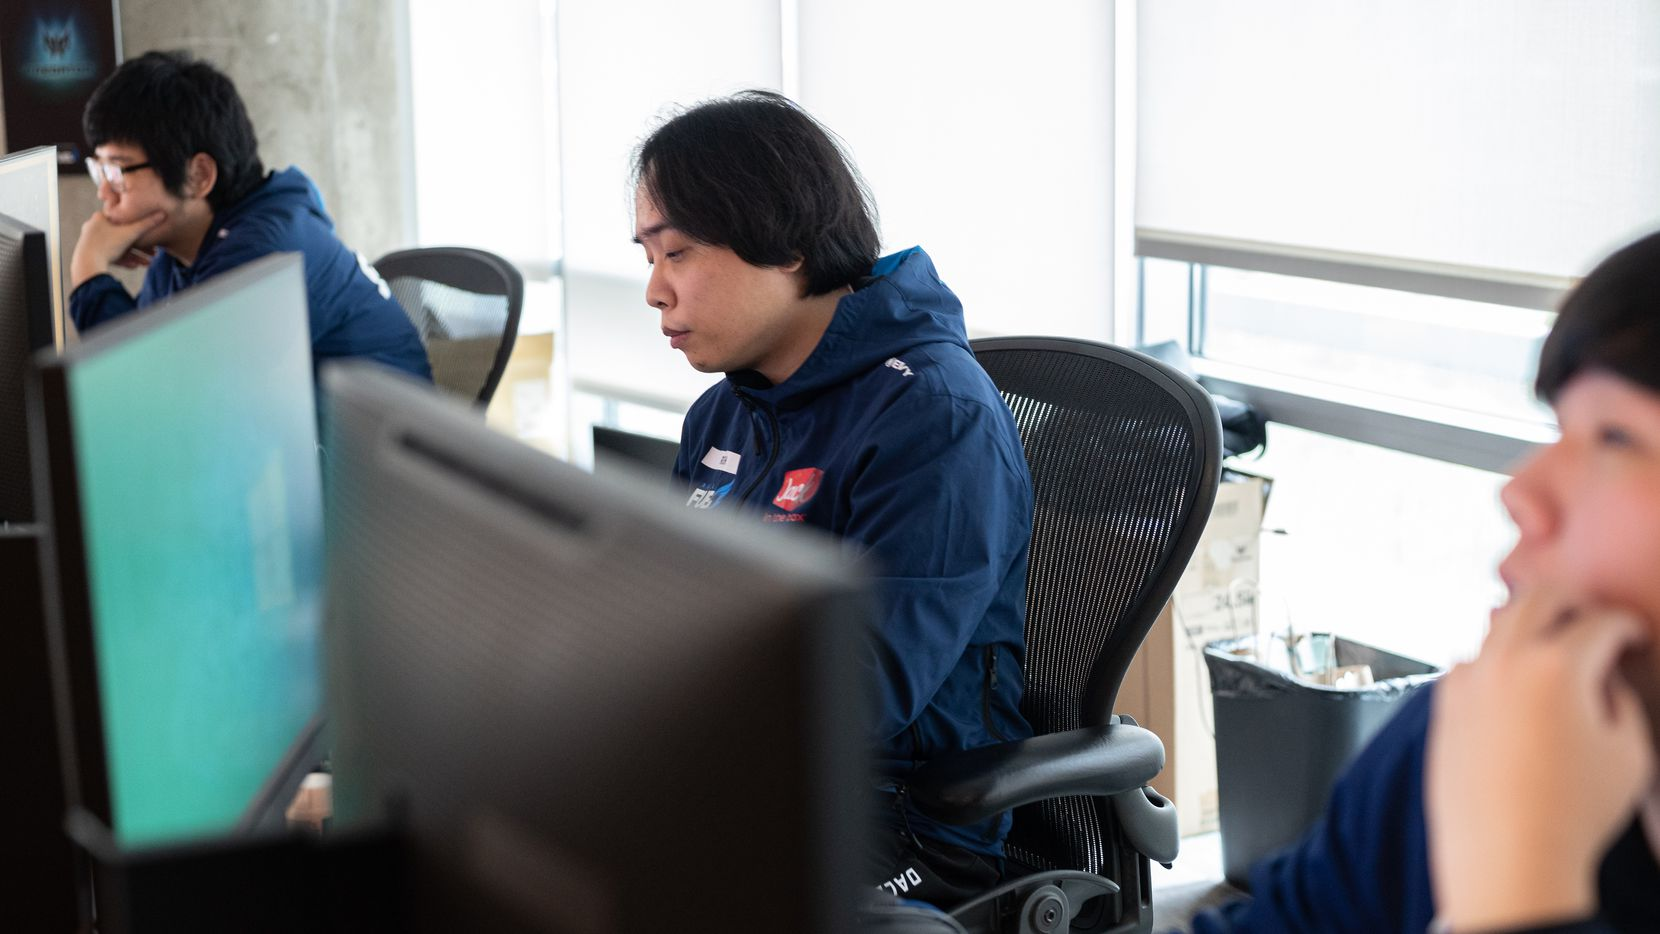 """Dallas Fuel head coach Hee-Won """"Rush"""" Yun, center, studies game play on computer monitors during practice time at the Dallas Fuel headquarters in Dallas, on Monday, Sept. 13, 2021."""